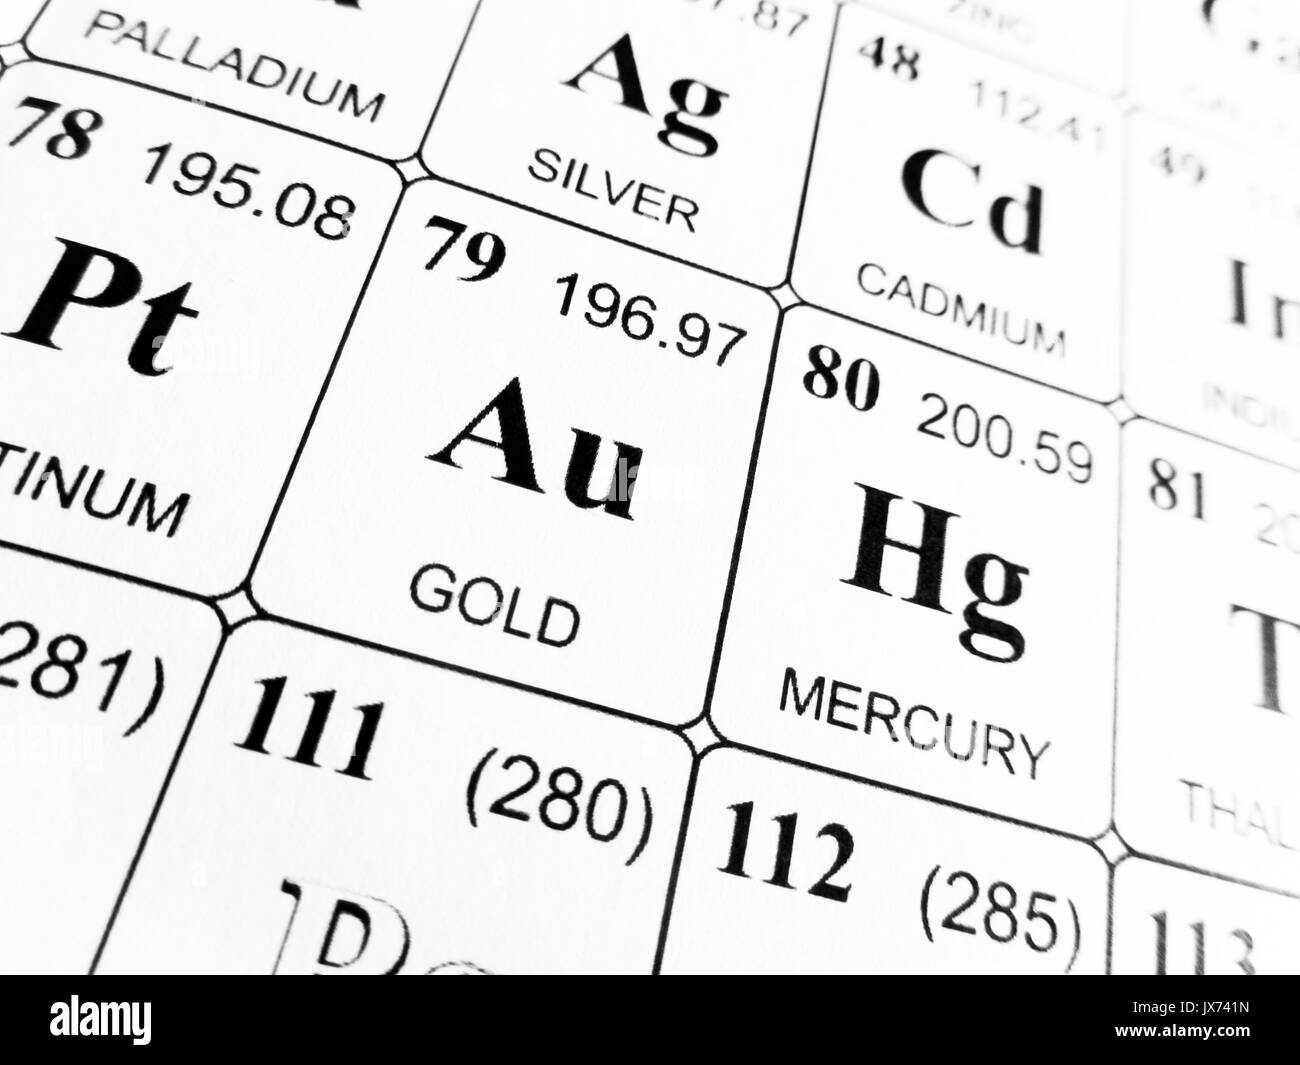 Gold on the periodic table of the elements stock photo 153820849 gold on the periodic table of the elements urtaz Image collections